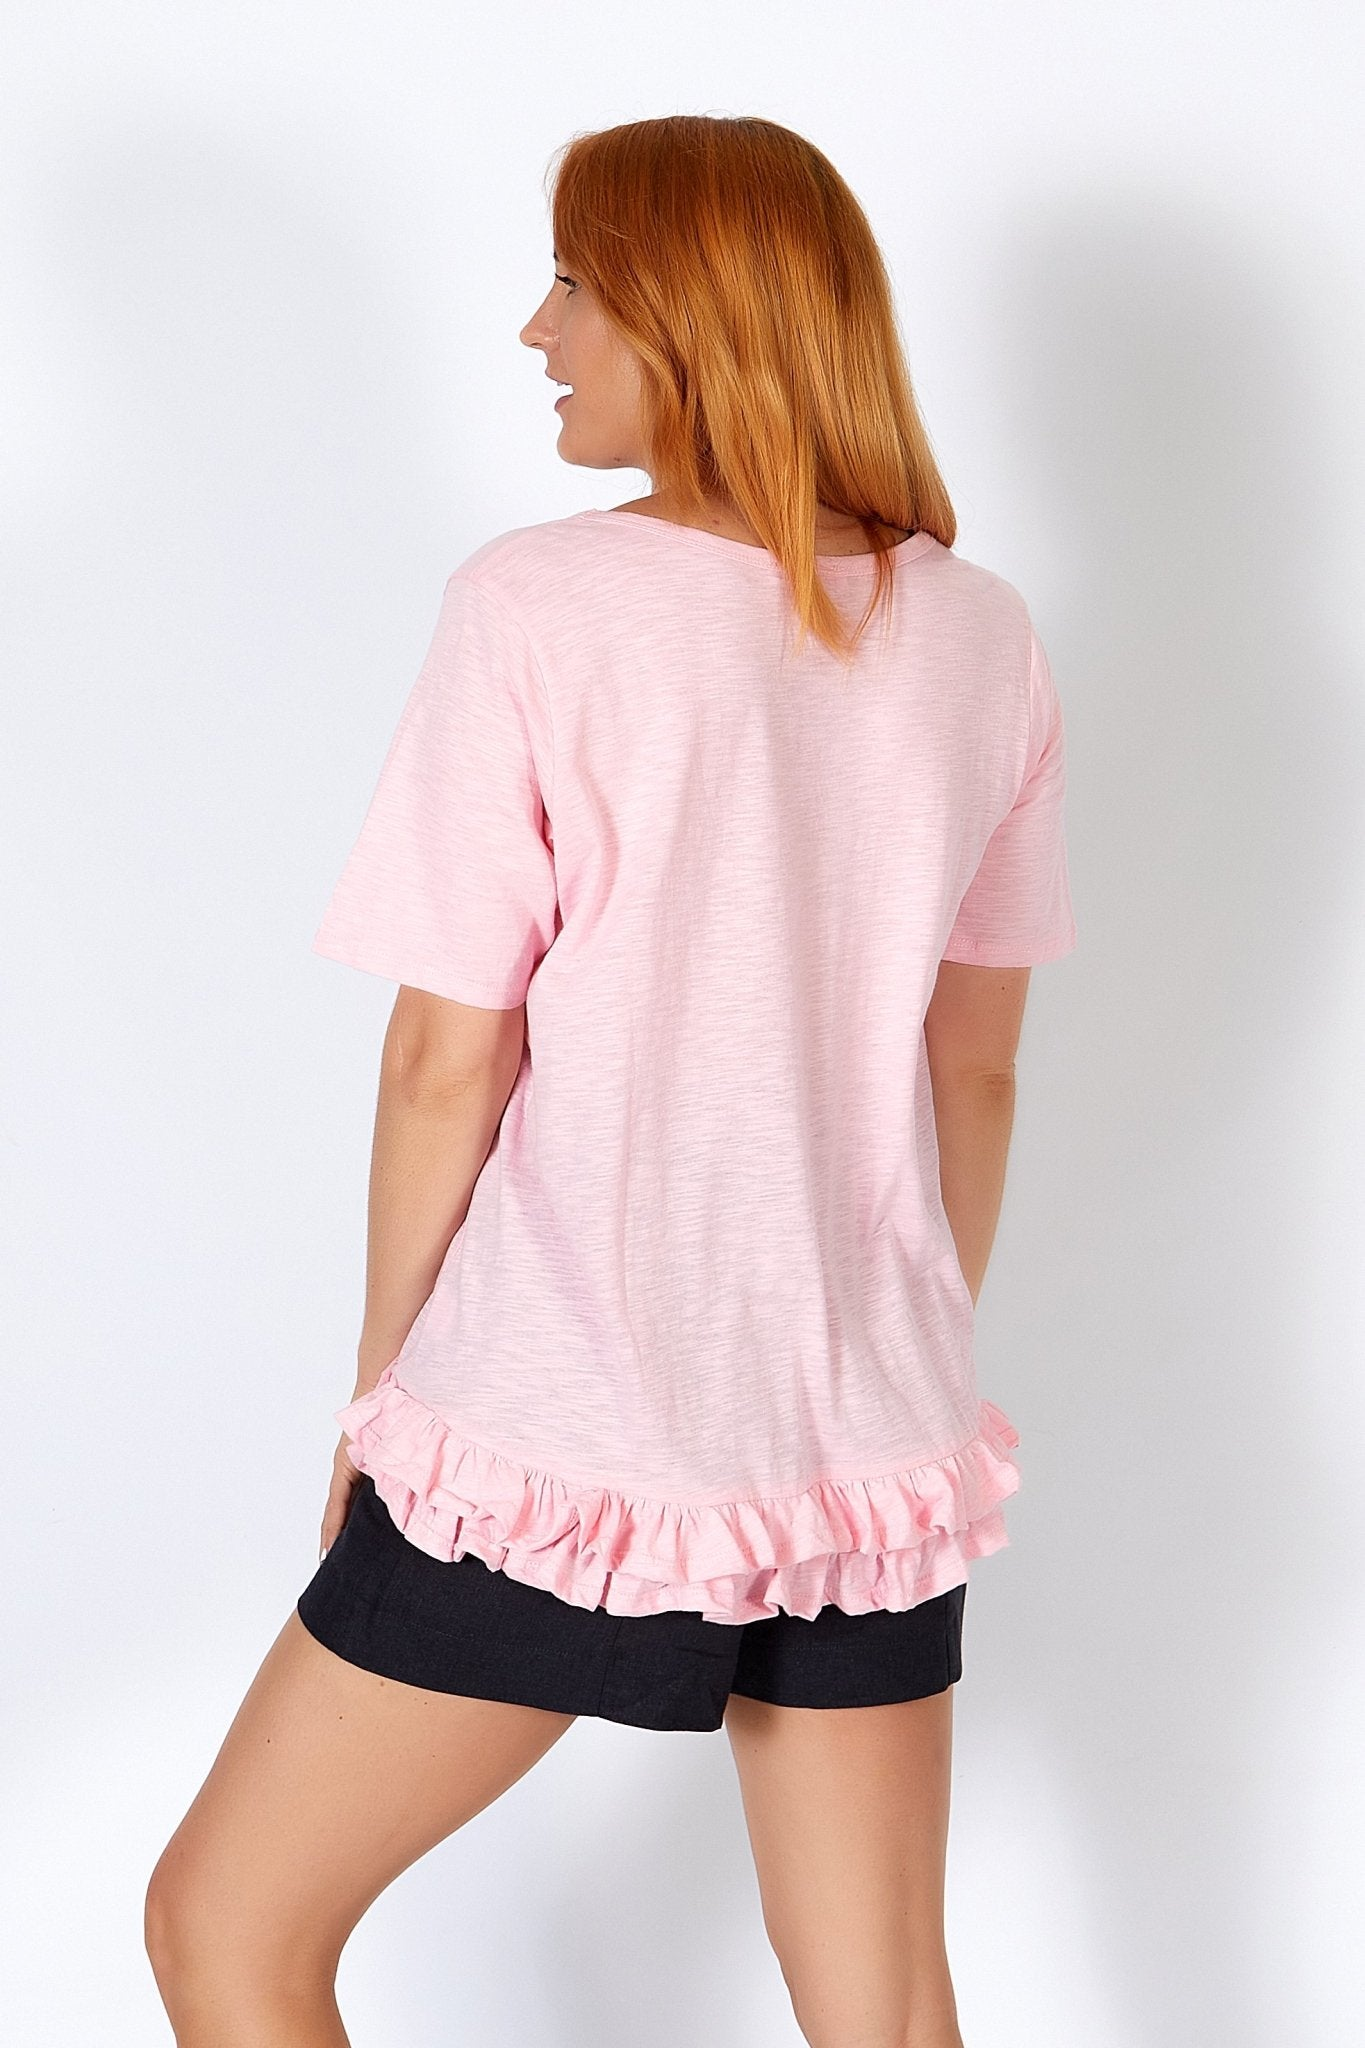 Betty Basics Sorrento Tee in Ballet Pink - Hey Sara